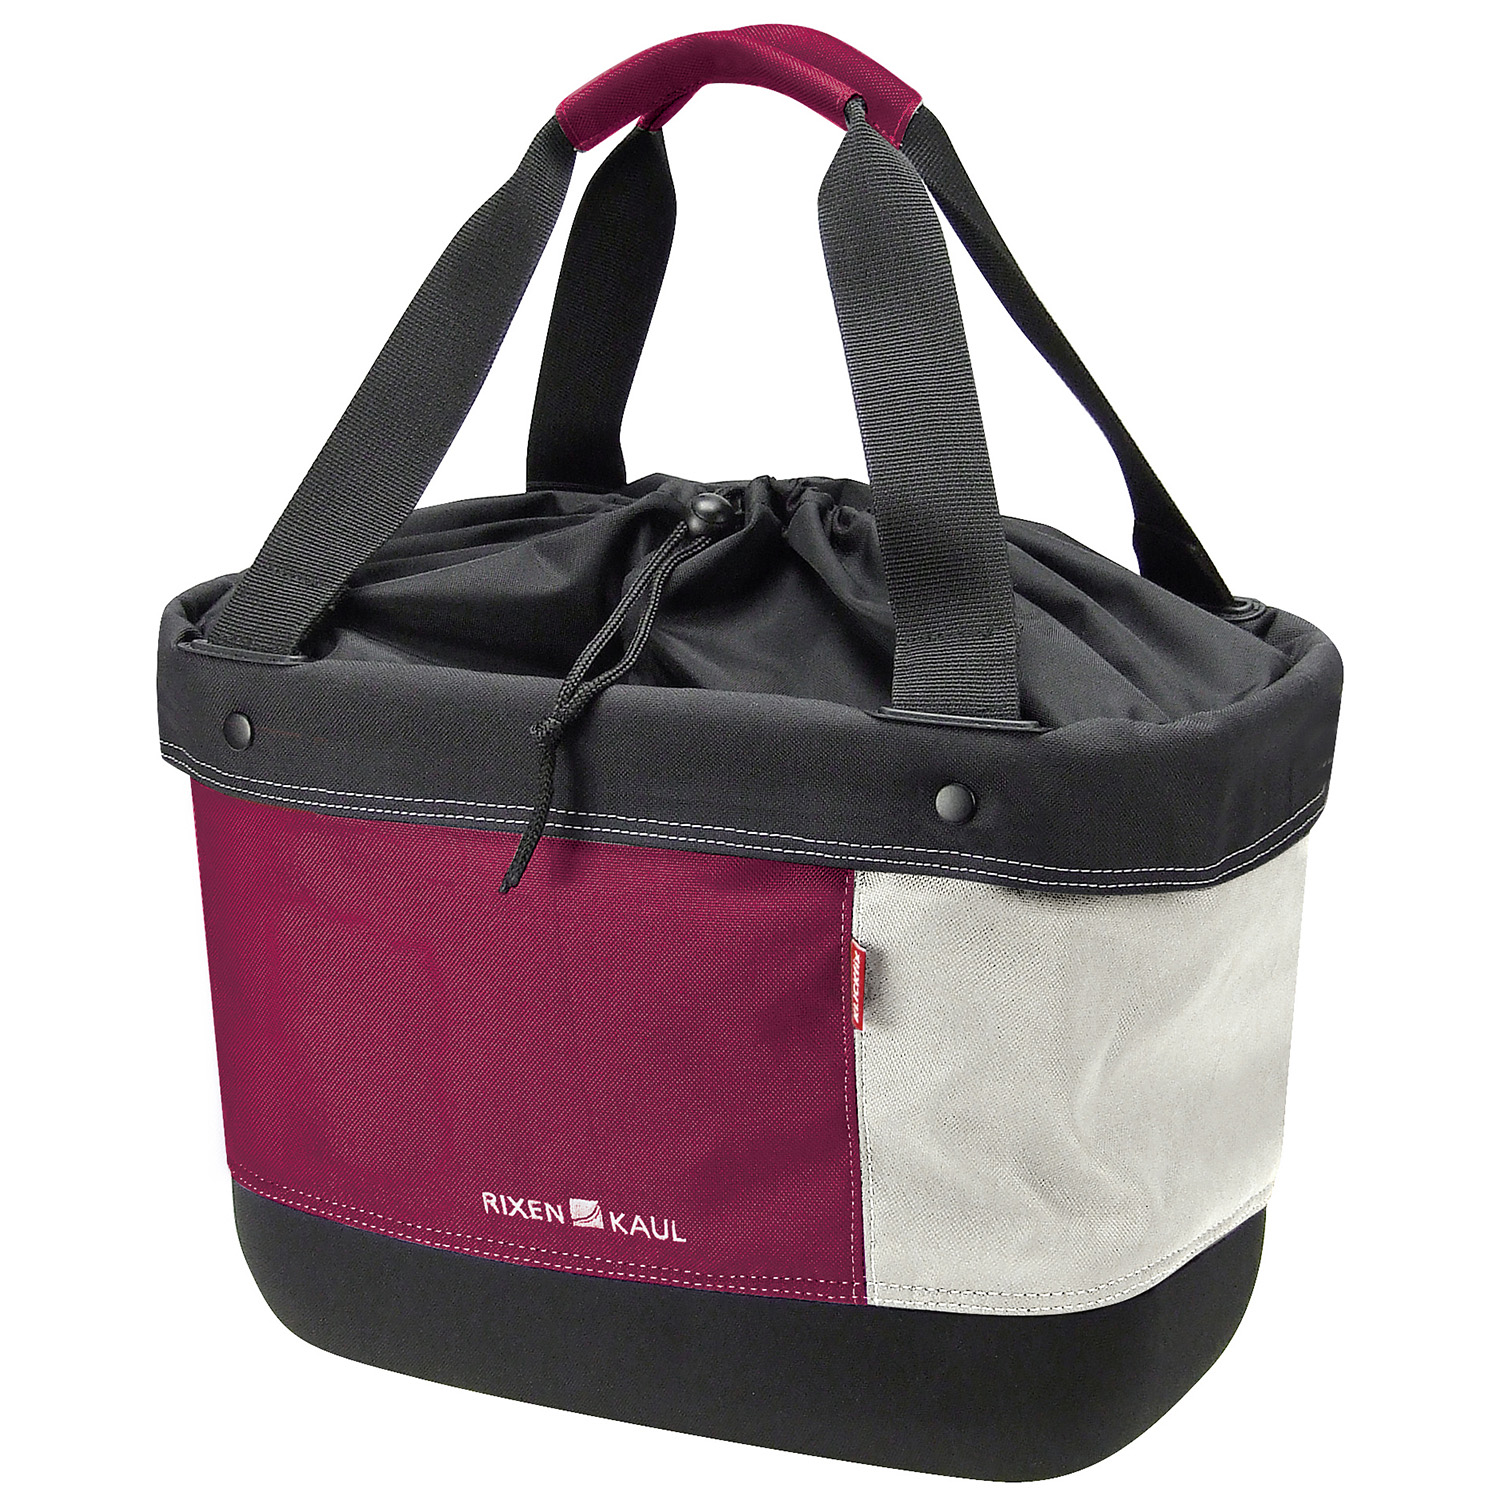 Shopper Alingo, light shopping bag with drawstring closure on Handlebar Adapter